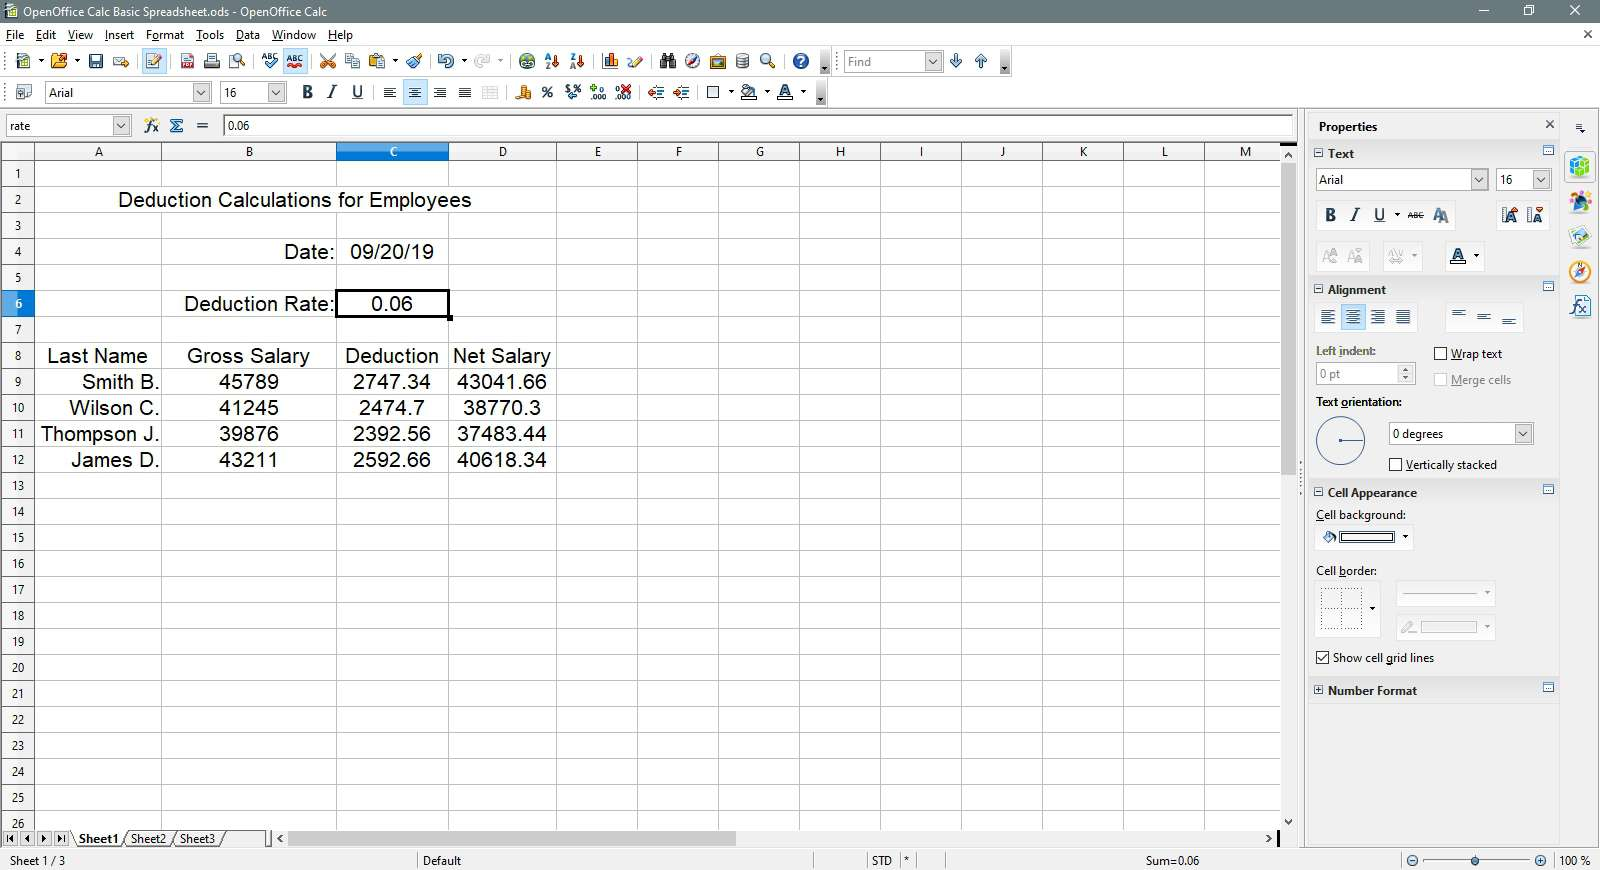 Cell C6 is selected in OpenOffice Calc.